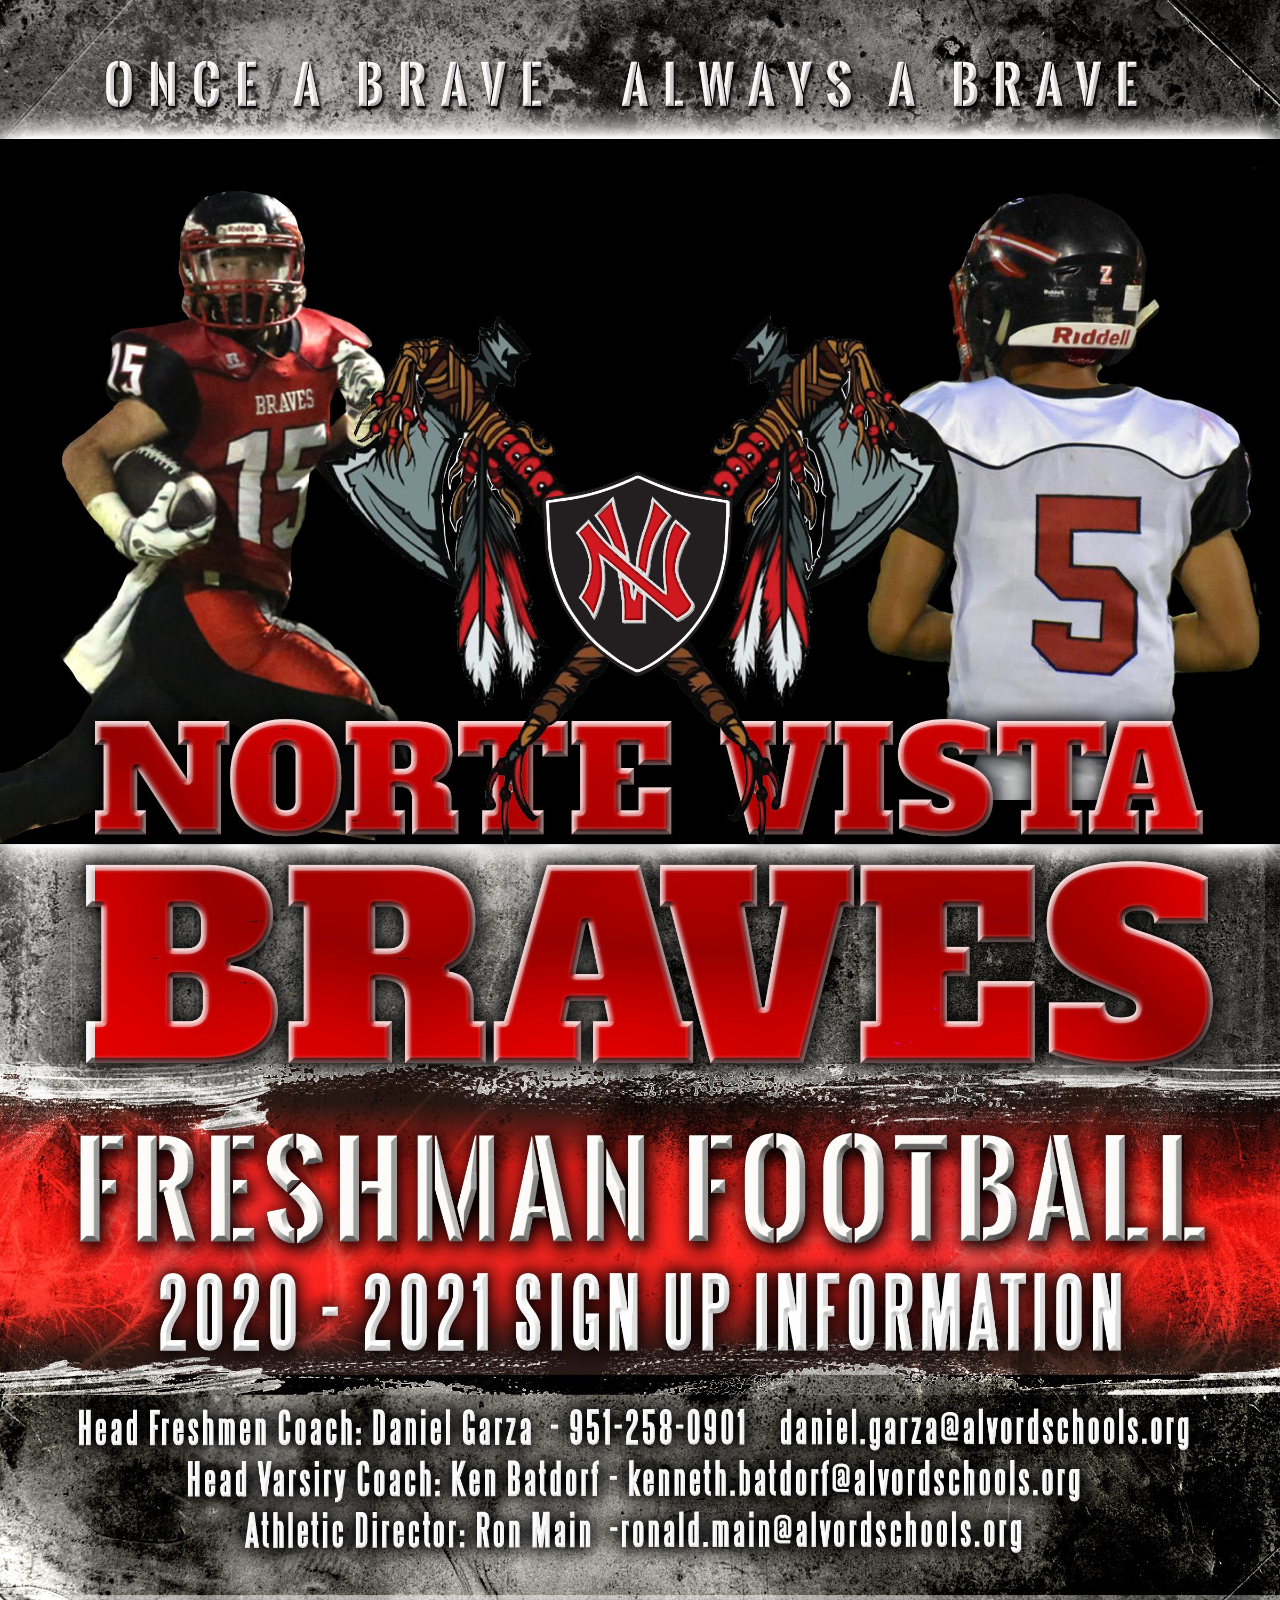 Freshman Football Information